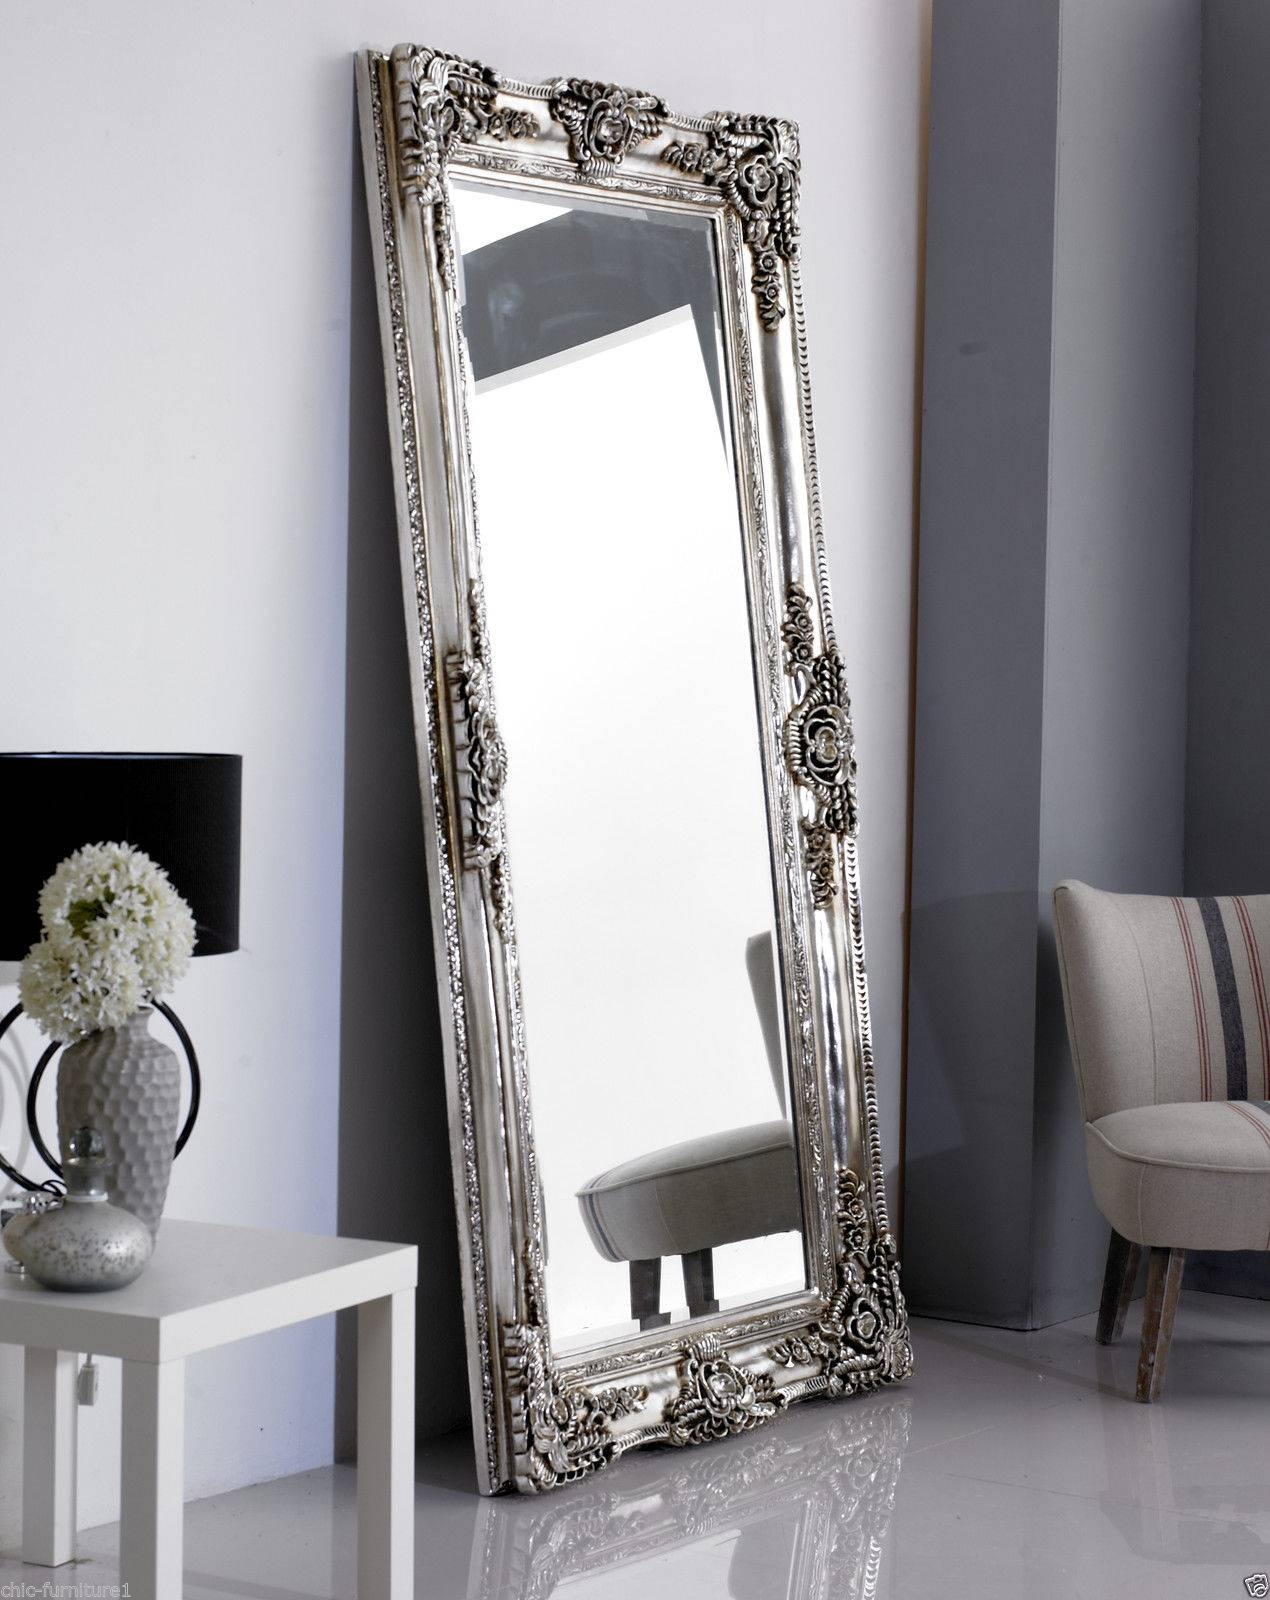 2018 latest silver ornate framed mirrors large rocco leaner silver ornate wall mirror 200x100cm ebay with amipublicfo Choice Image